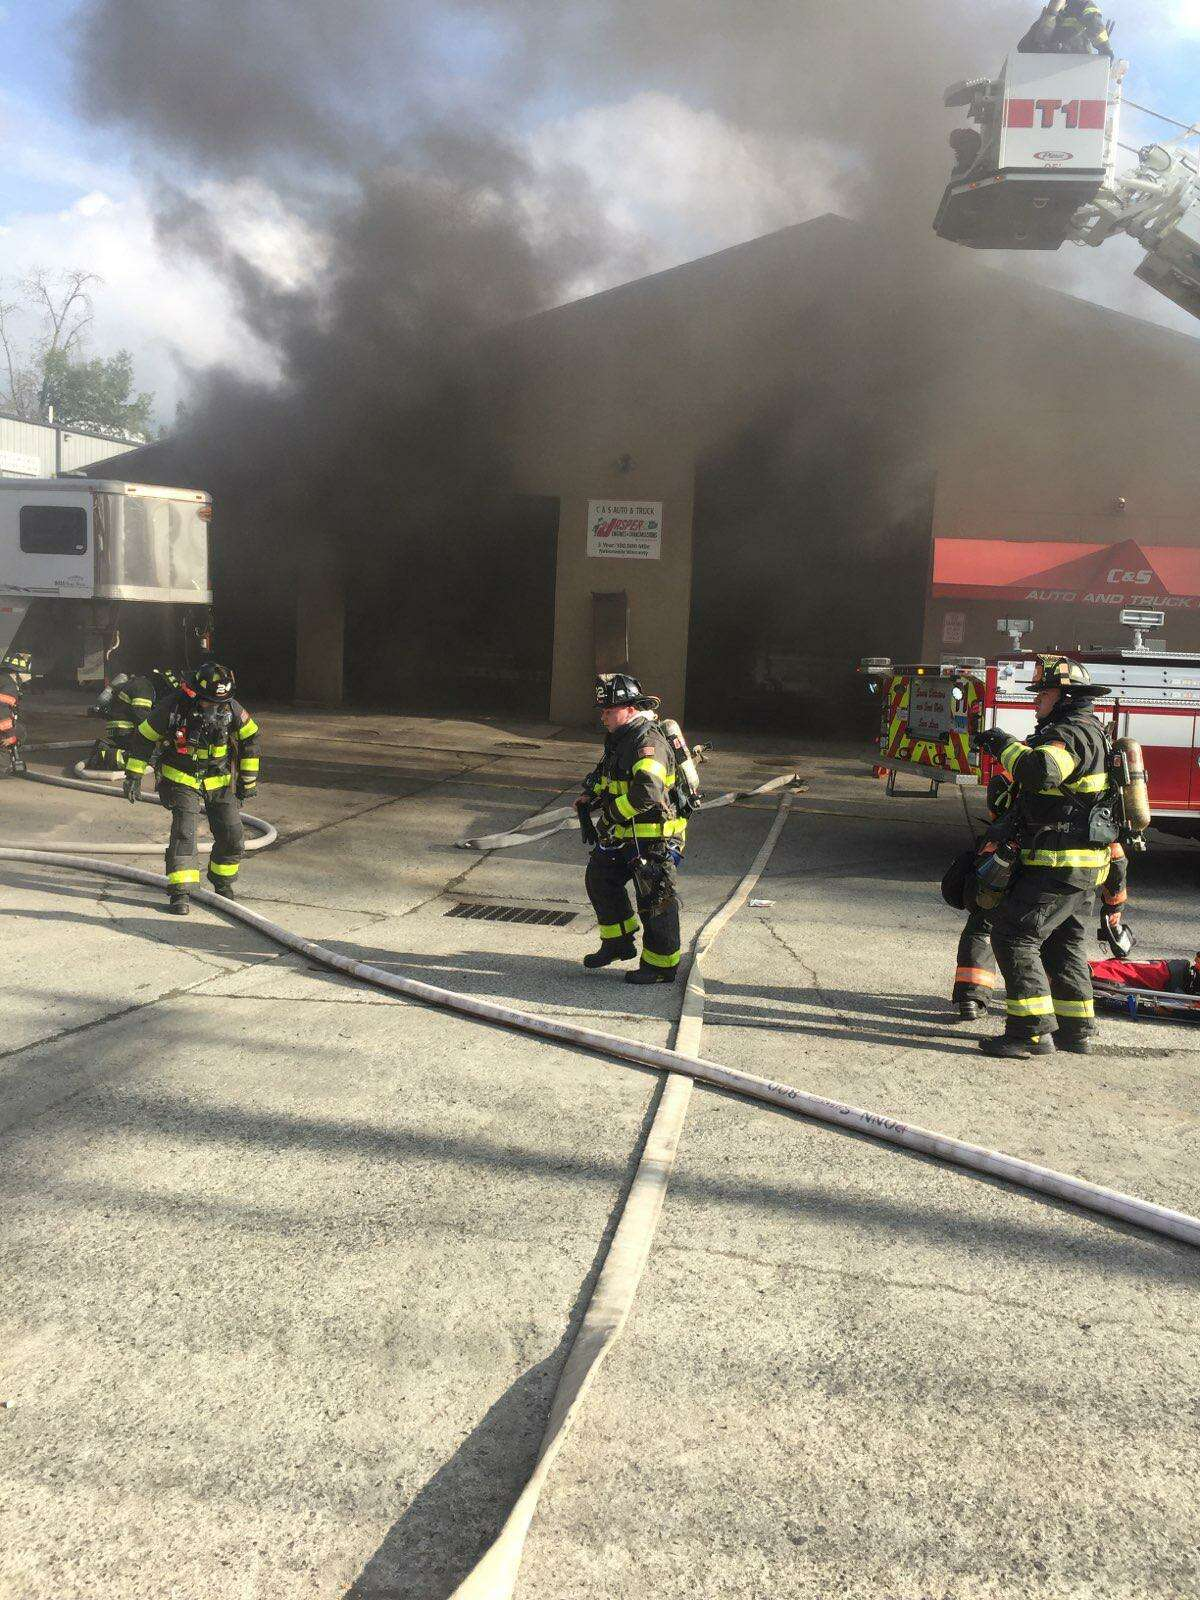 Firefighters work to put out a fire at C & S Auto & Truck Repair in Danbury on Sept. 2, 2019.